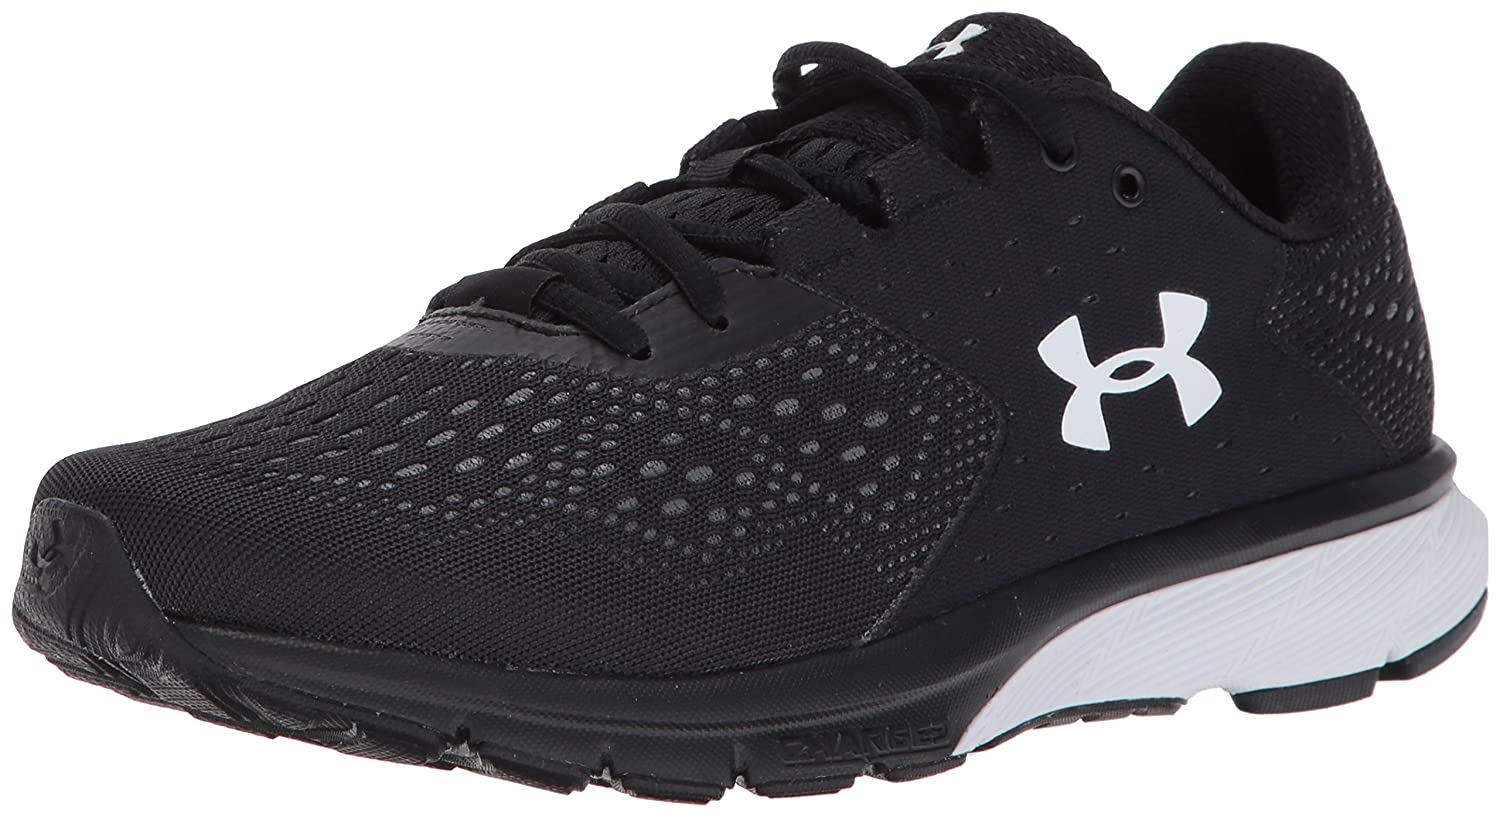 Under Armour Women's Charged Rebel Running Shoe B01N6G5W63 9 M US|Black (001)/Rhino Gray